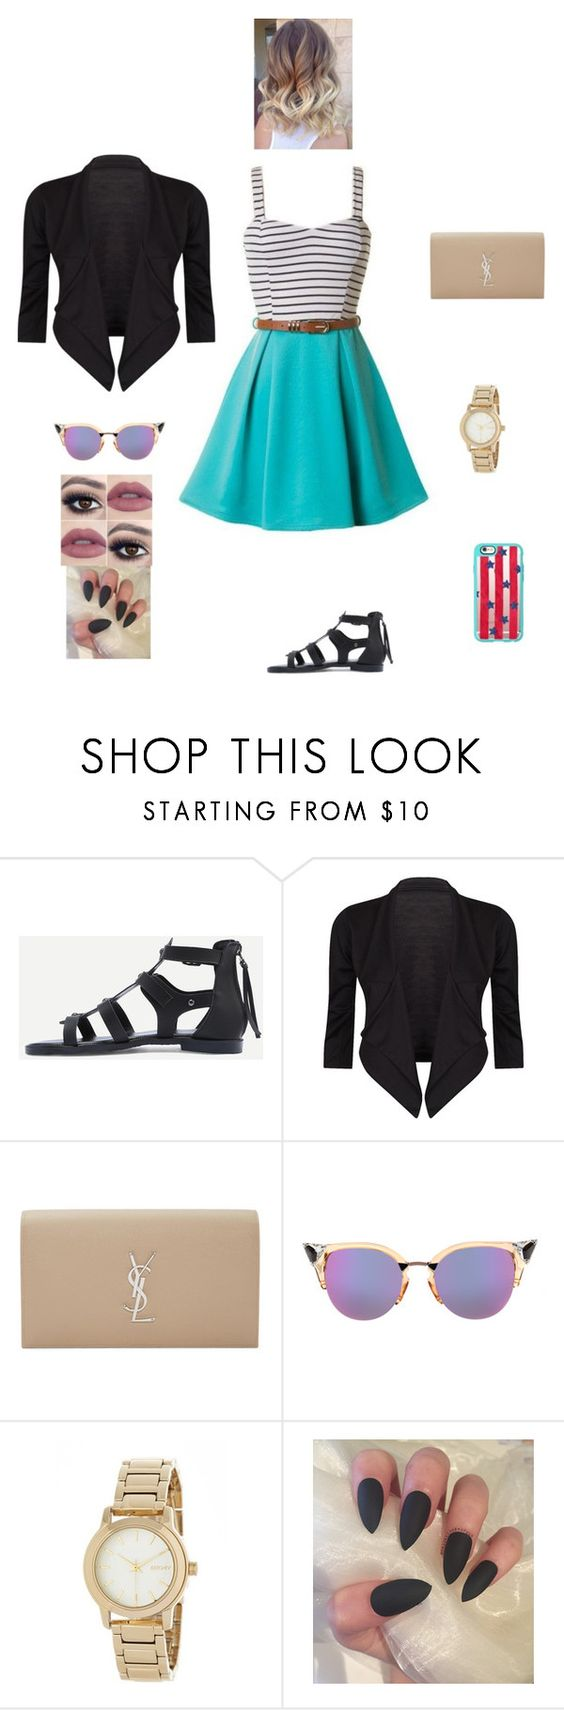 """K B G O A D W D H"" by queen-kaitlyn ❤ liked on Polyvore featuring Yves Saint Laurent, Fendi, DKNY and Casetify"